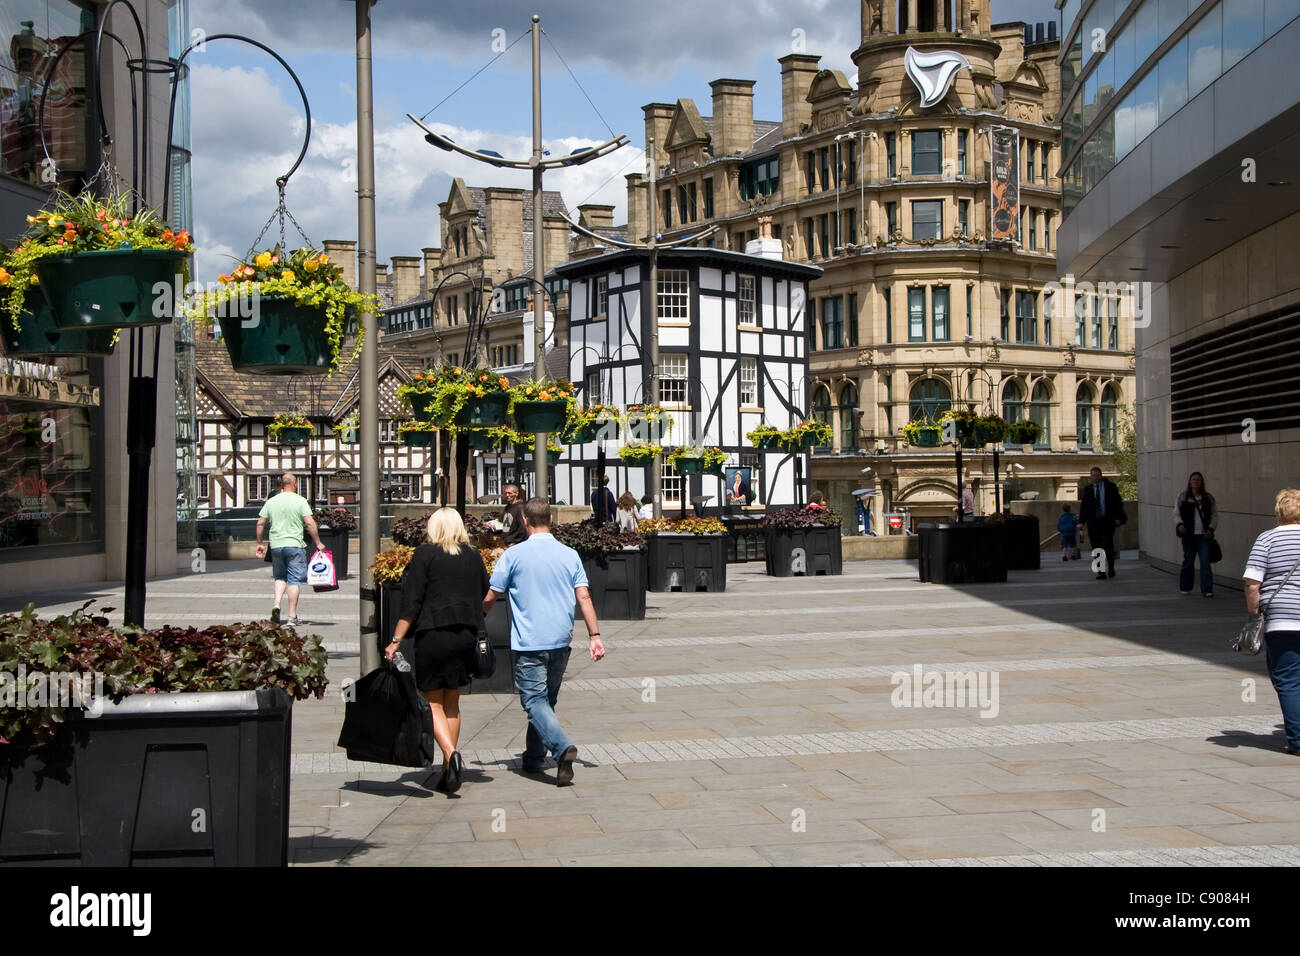 Shoppers, off Market St, looking to Sinclair's pub and Triangle, city centre, Manchester, UK - Stock Image